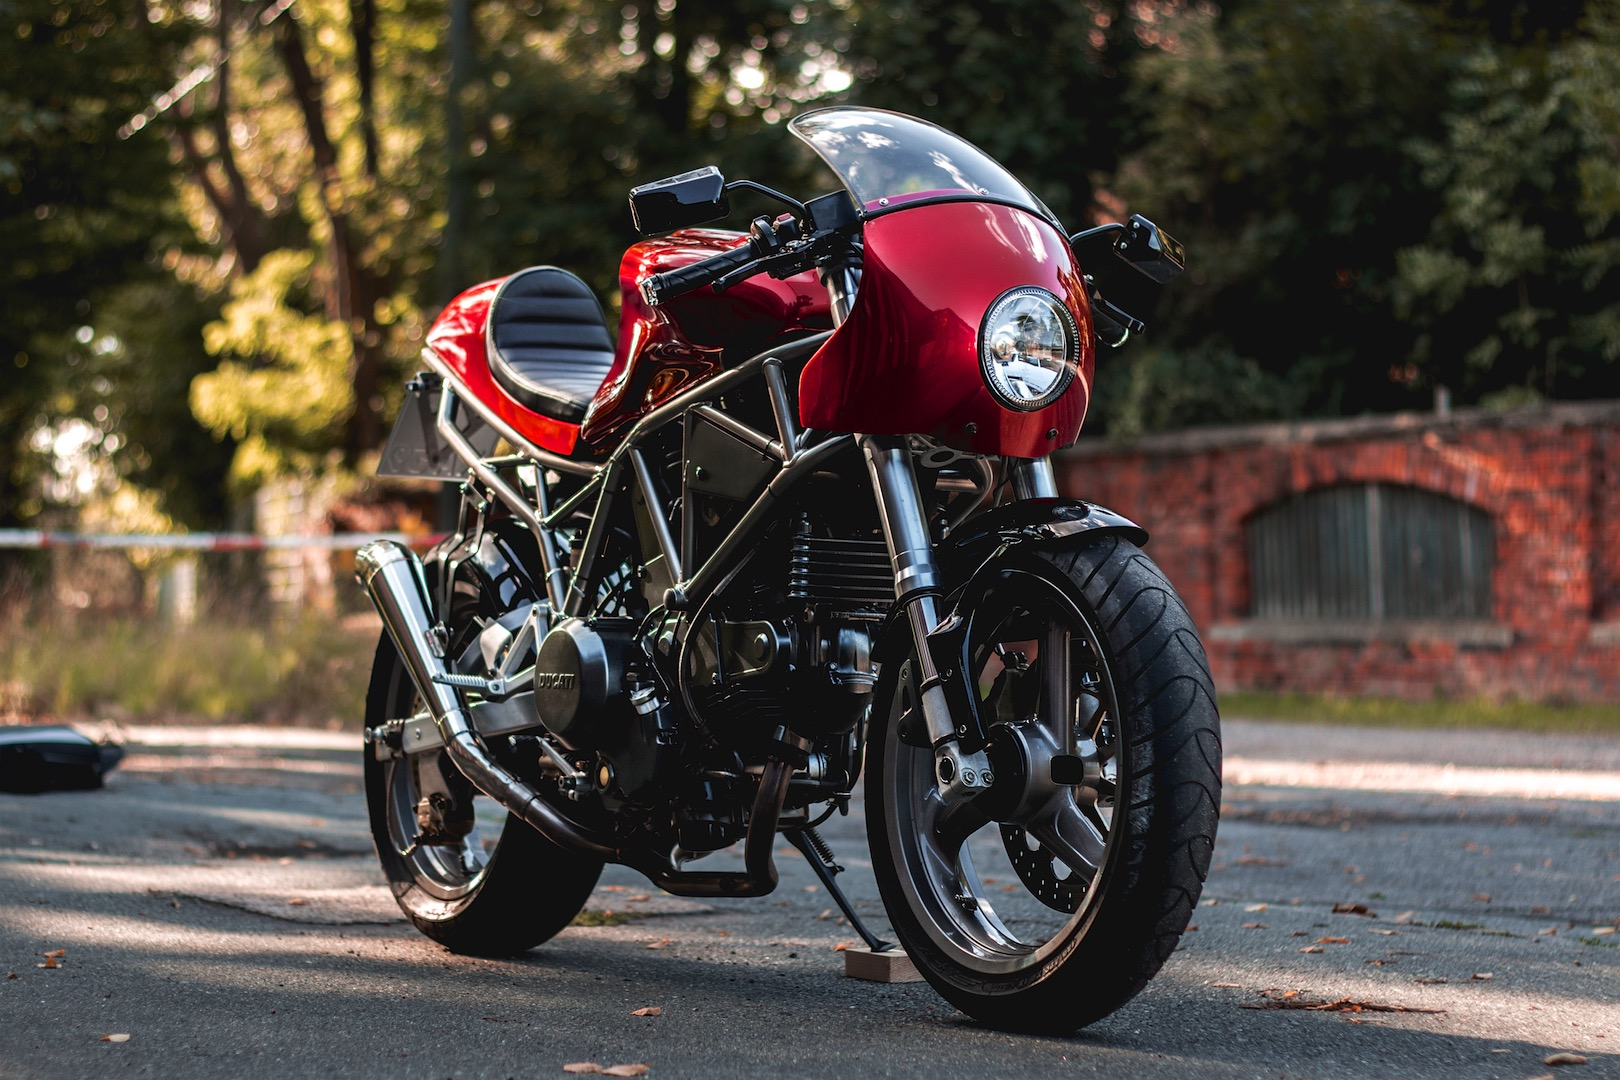 Kaspeed Custom Motorcycles Ducati 750 SS price